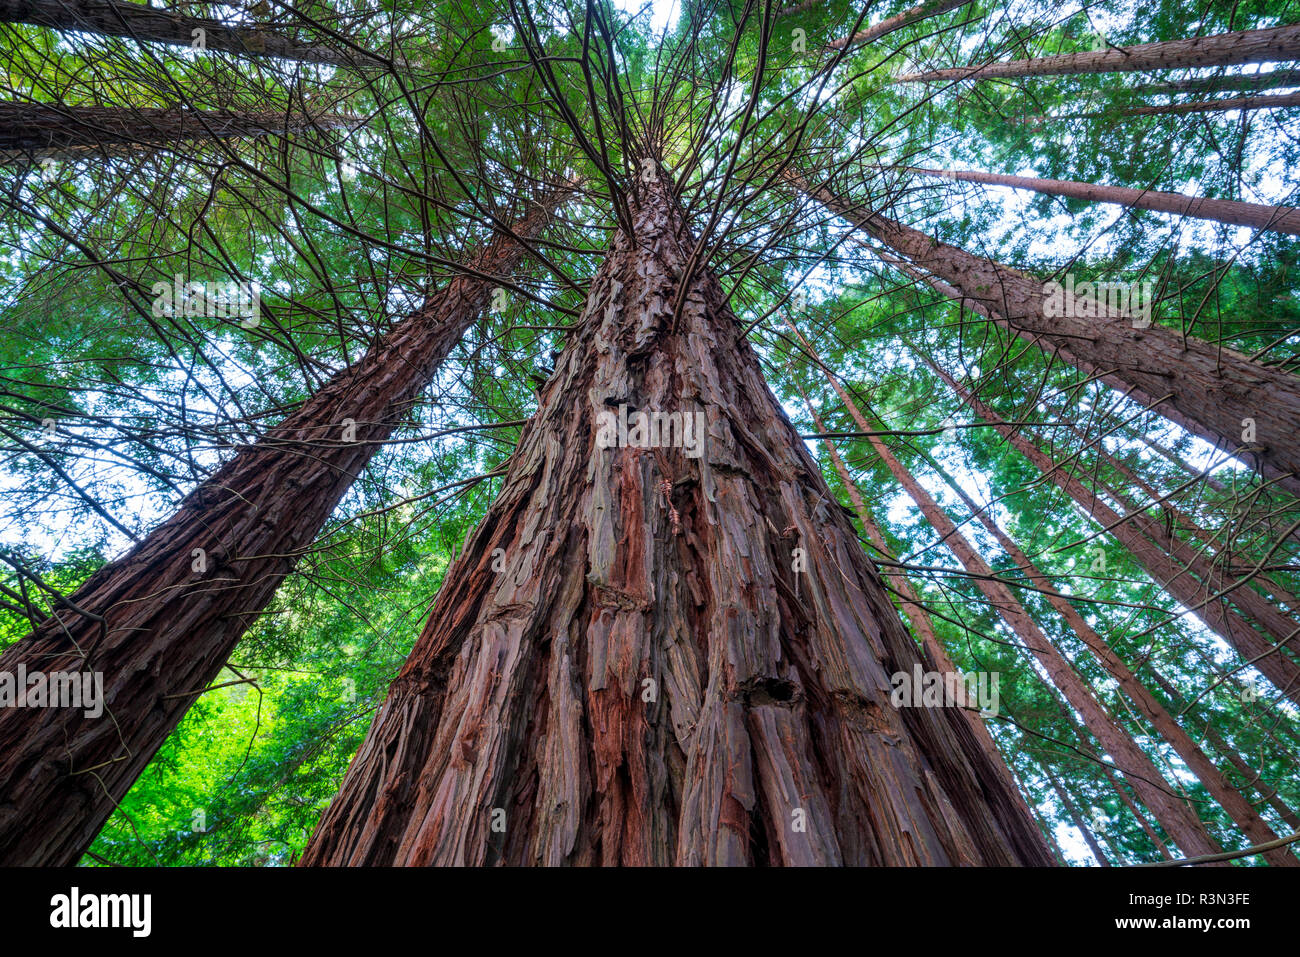 Sequoia - Sequoya (Sequoia sempervirens) is the sole living species of the genus Sequoia in the cypress family Cupressaceae (formerly treated in Taxodiaceae). Common names include coast redwood, coastal redwood and California redwood - Stock Image